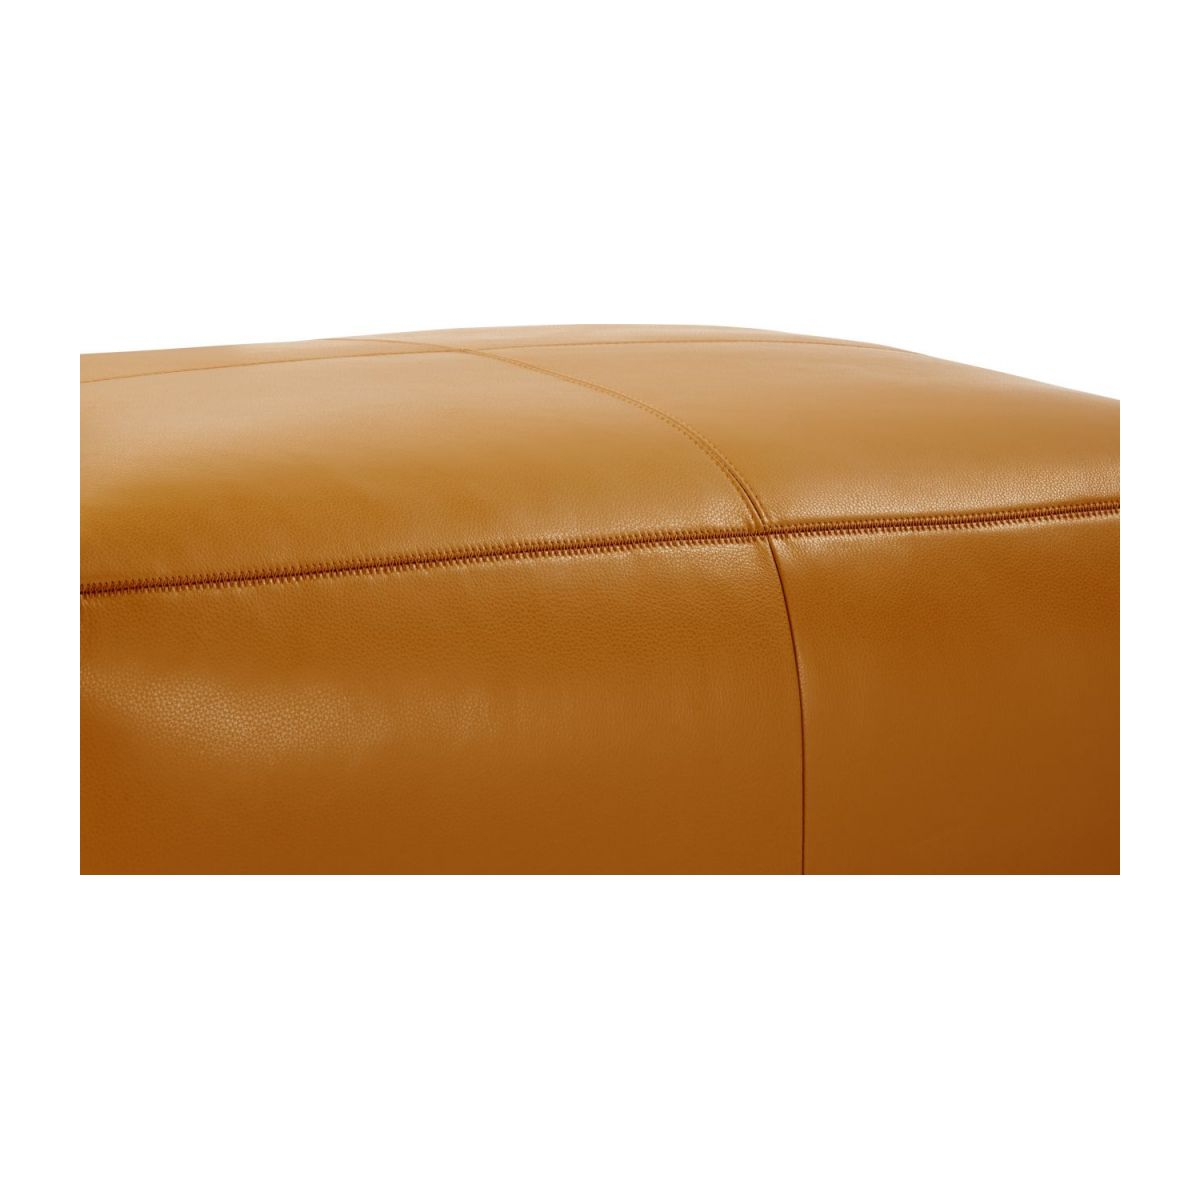 Footstool in Savoy semi-aniline leather, cognac n°6